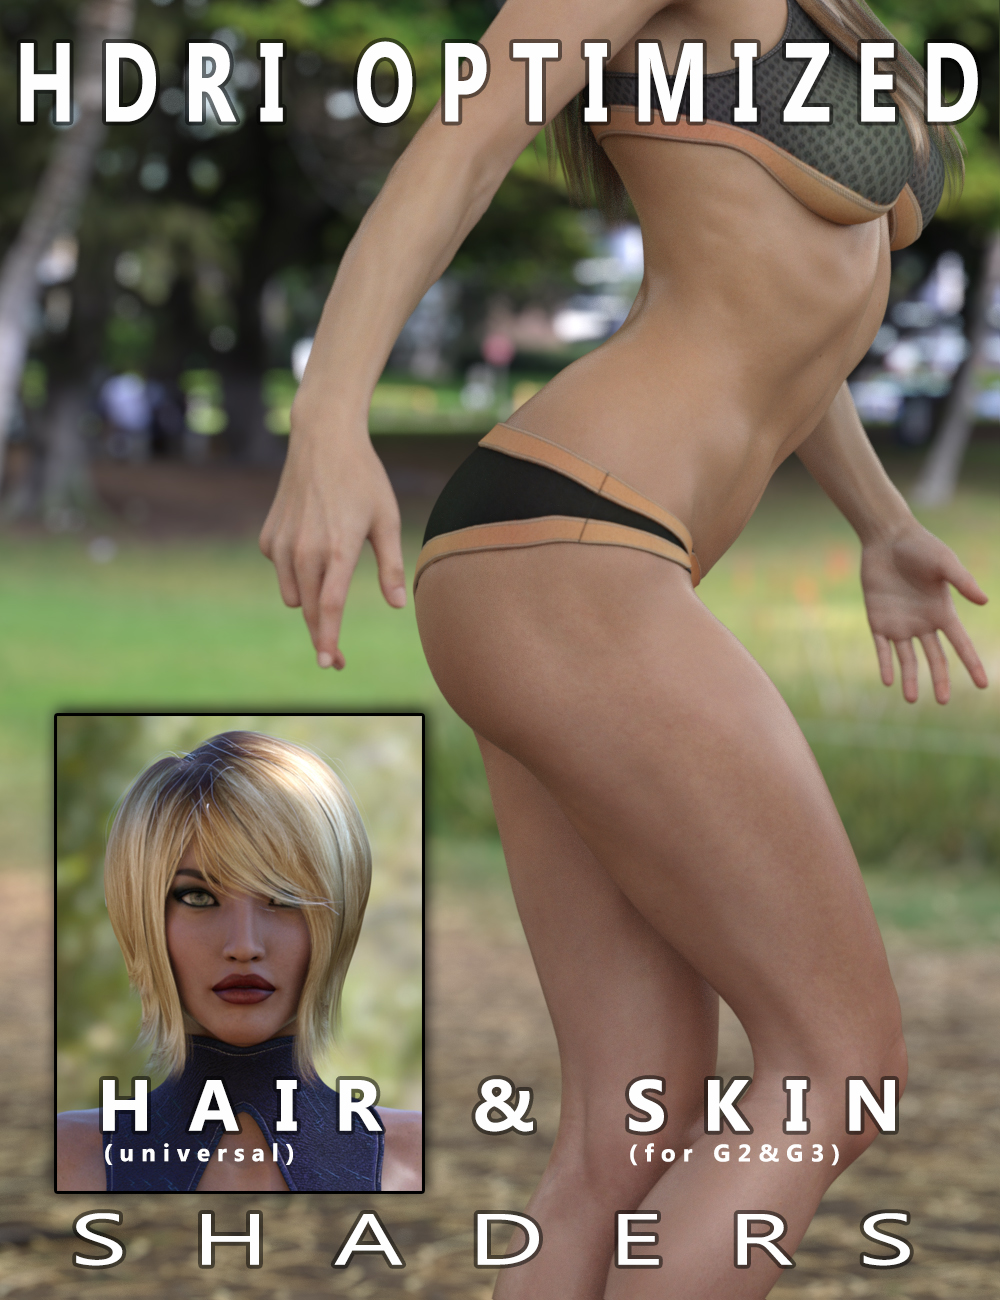 HDRI Optimized Skin & Hair Shaders by: Tolero, 3D Models by Daz 3D